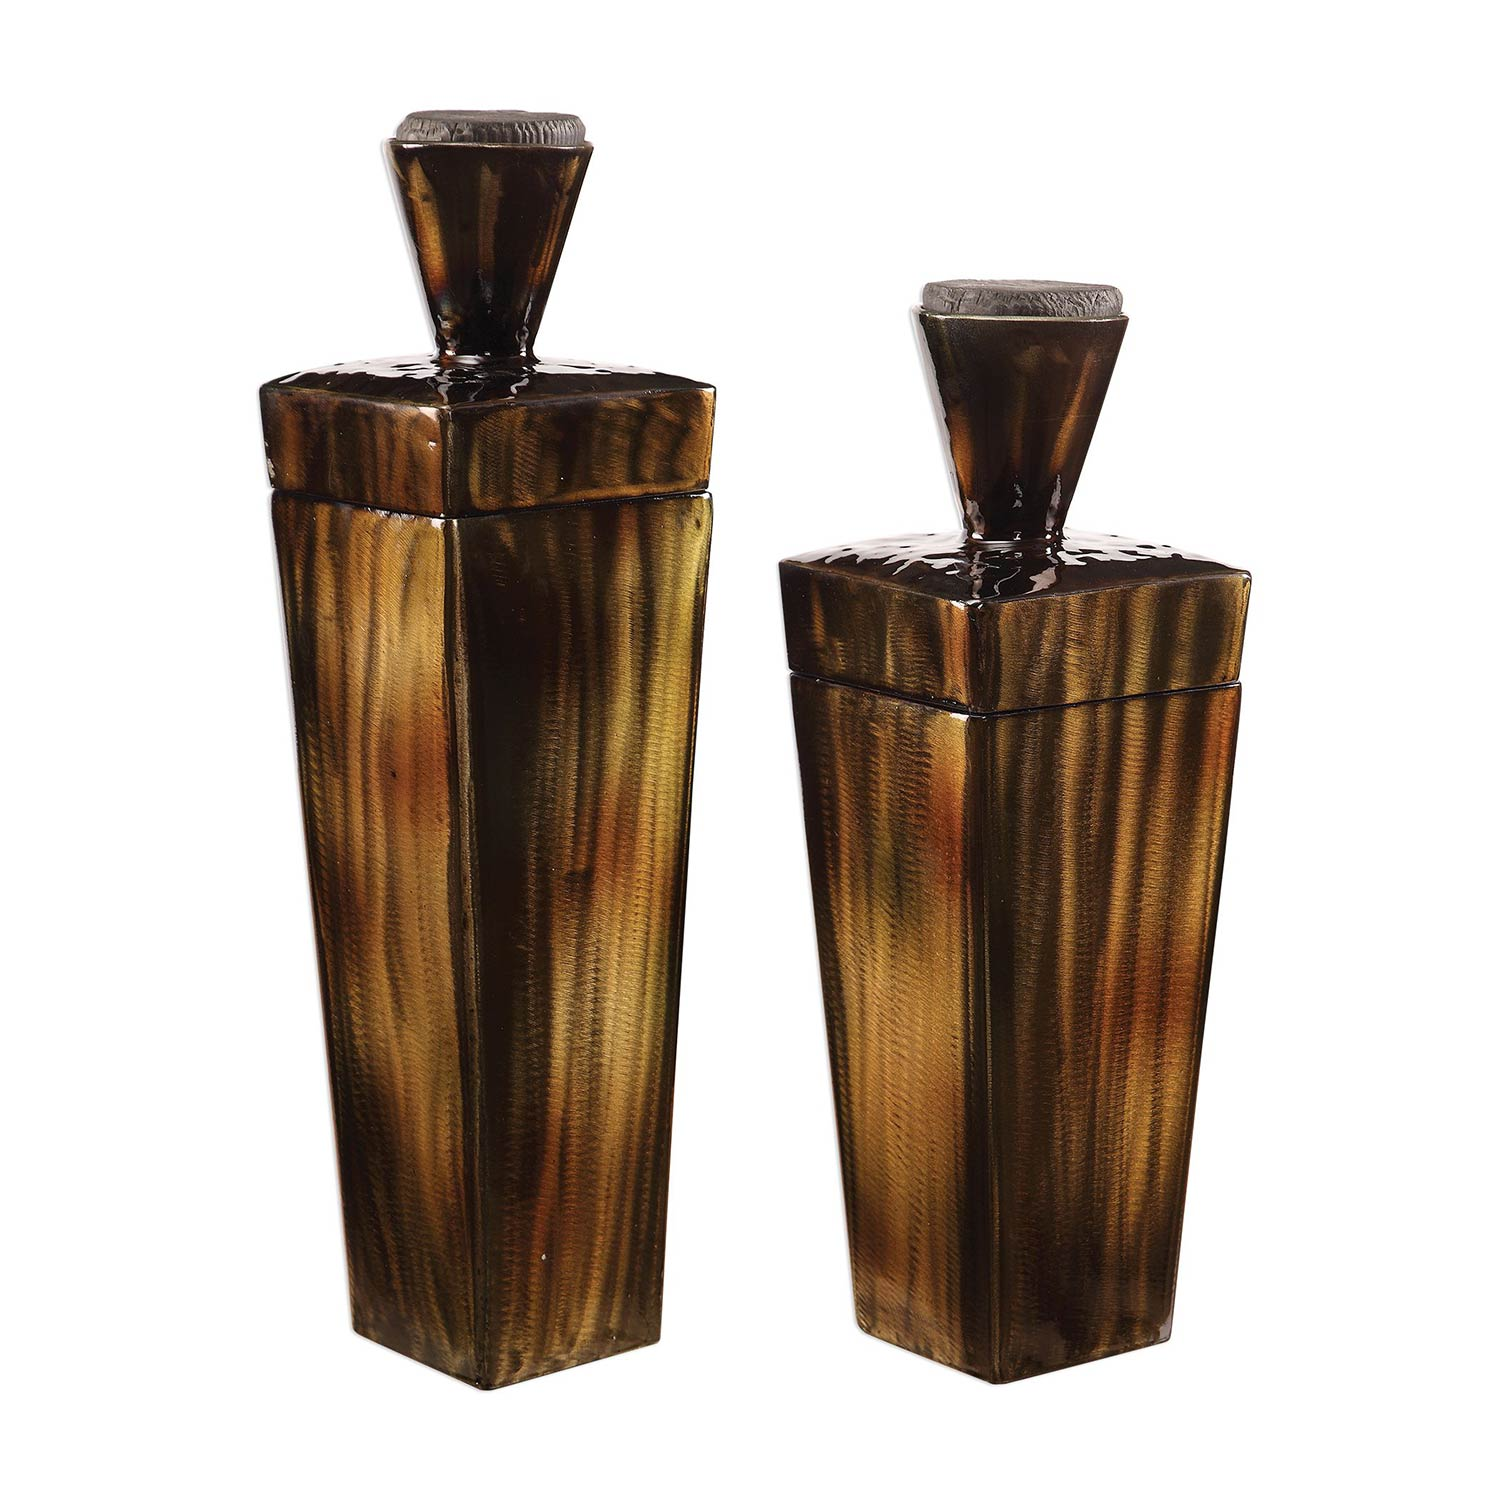 Uttermost Lisa Steel Containers - Set of 2 - Brown